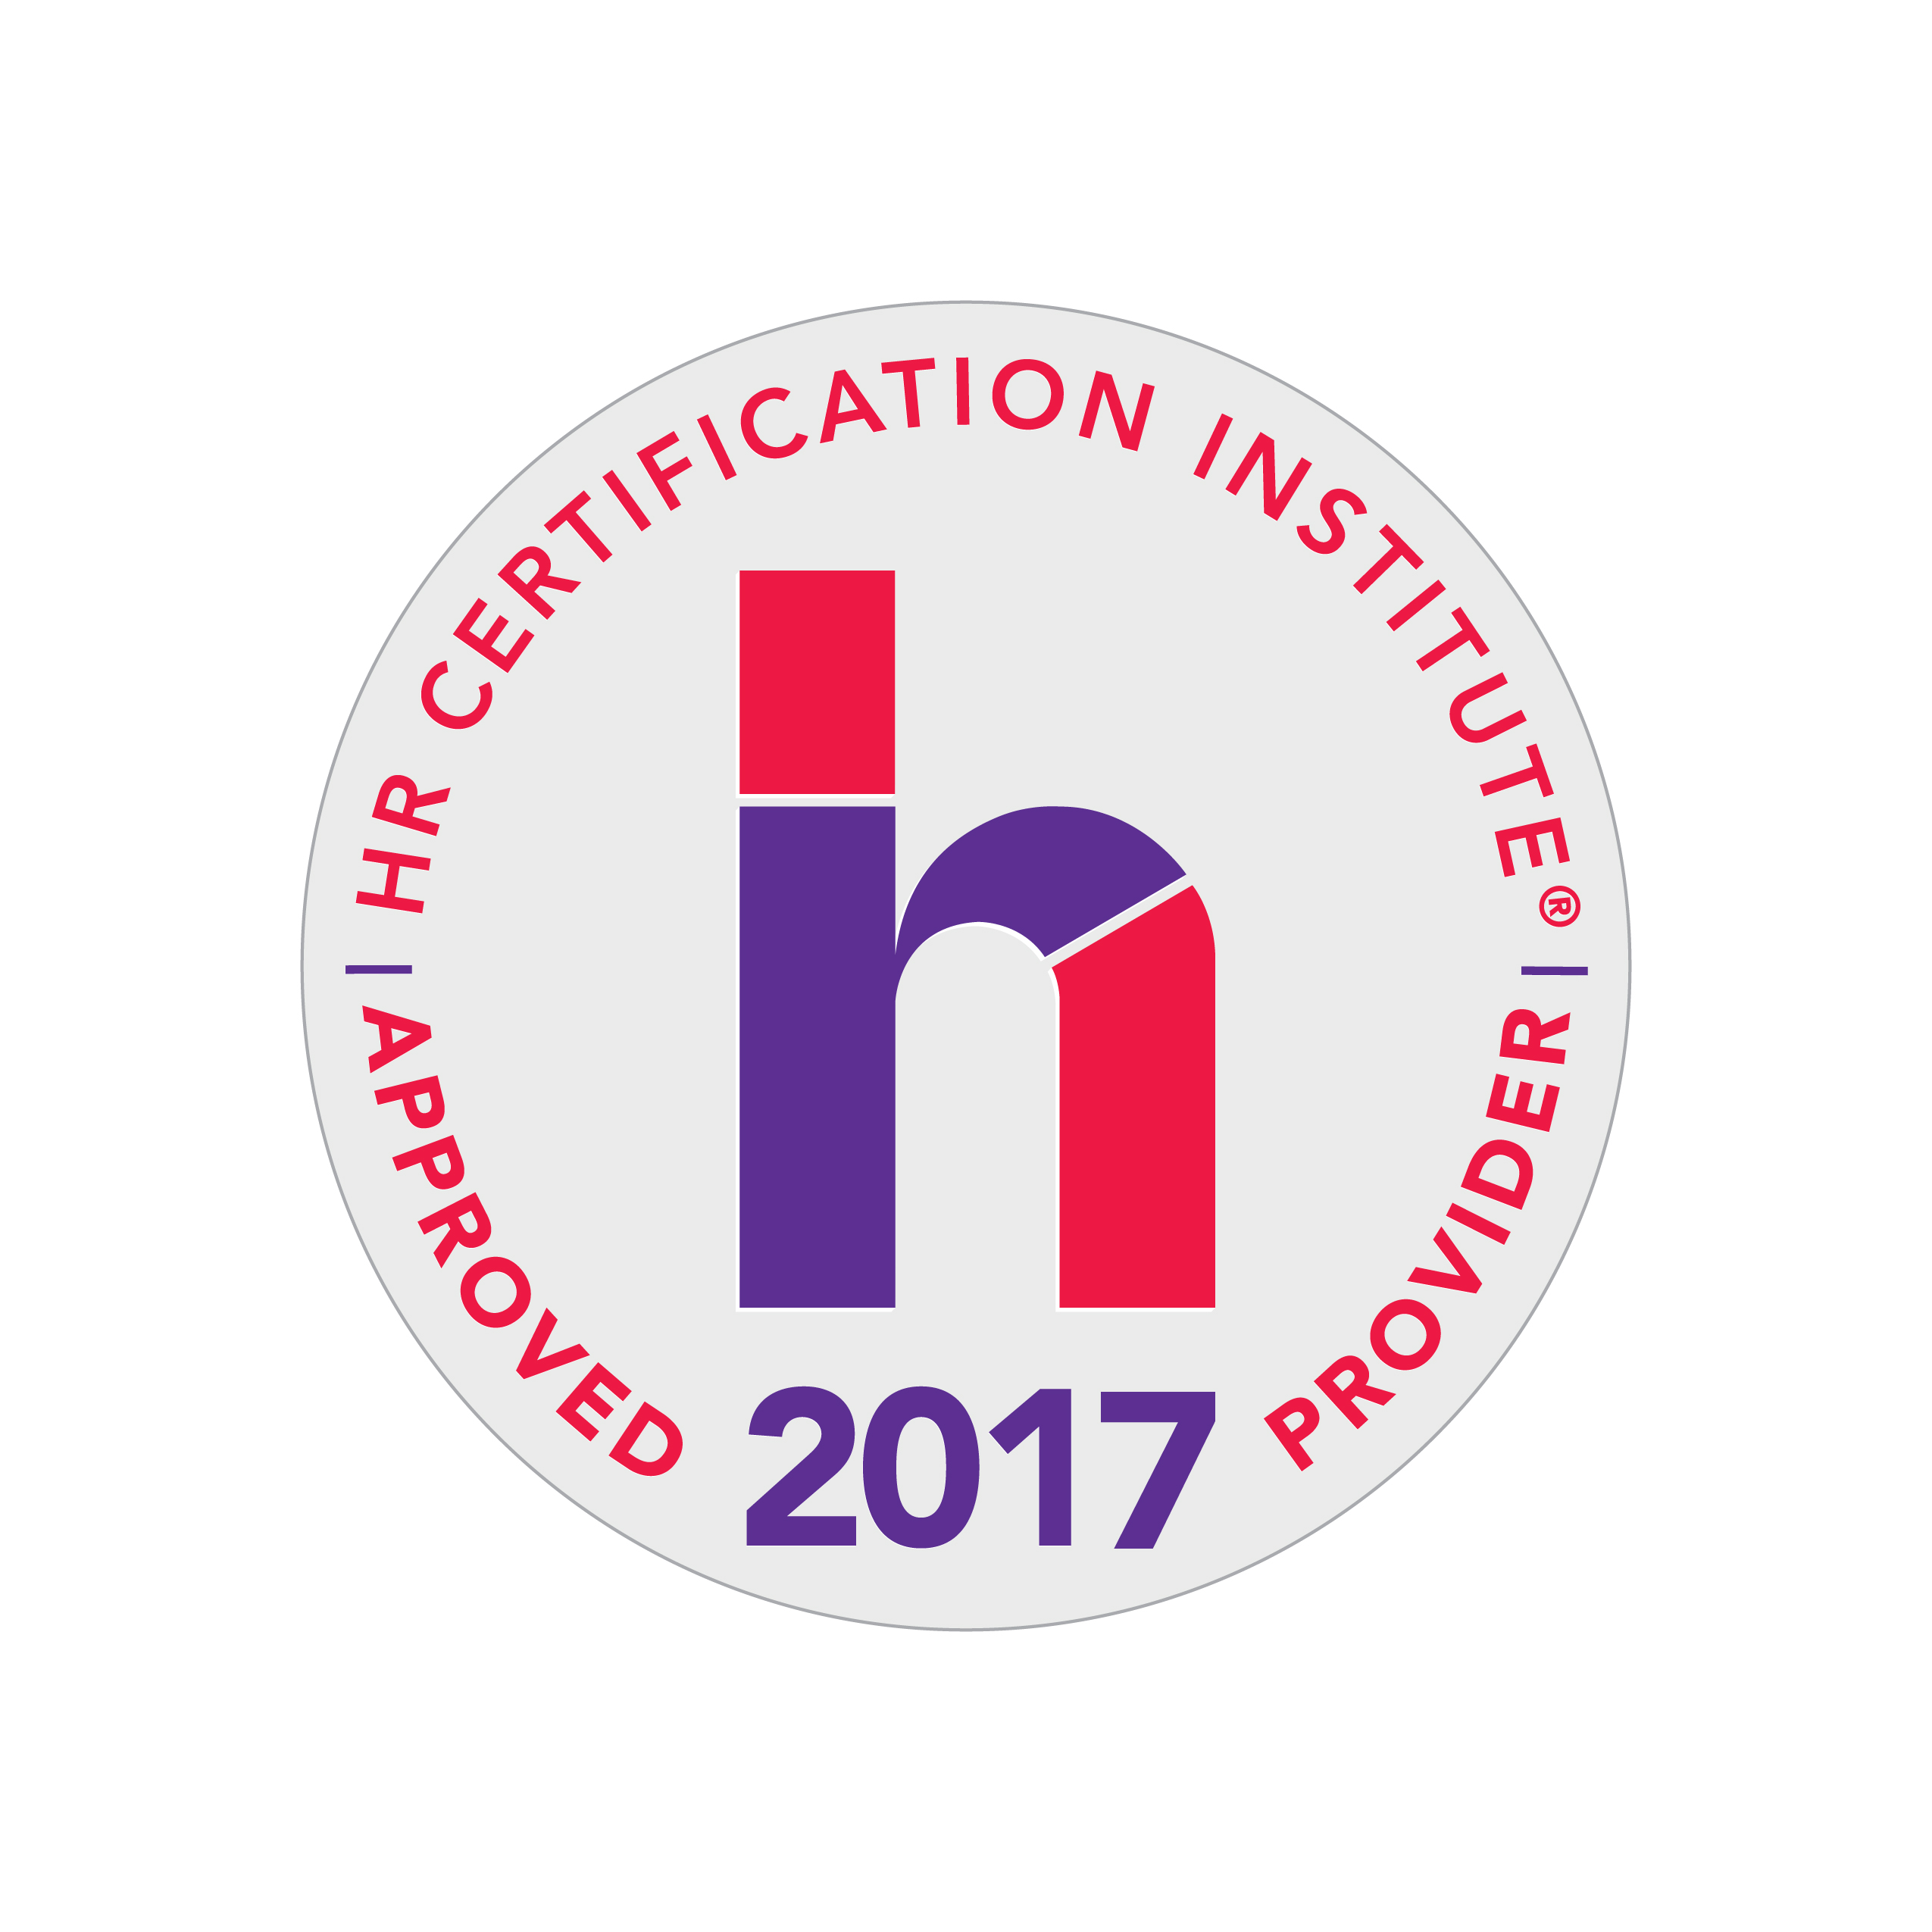 Hrci And Cle Credits American Association For Access Equity And